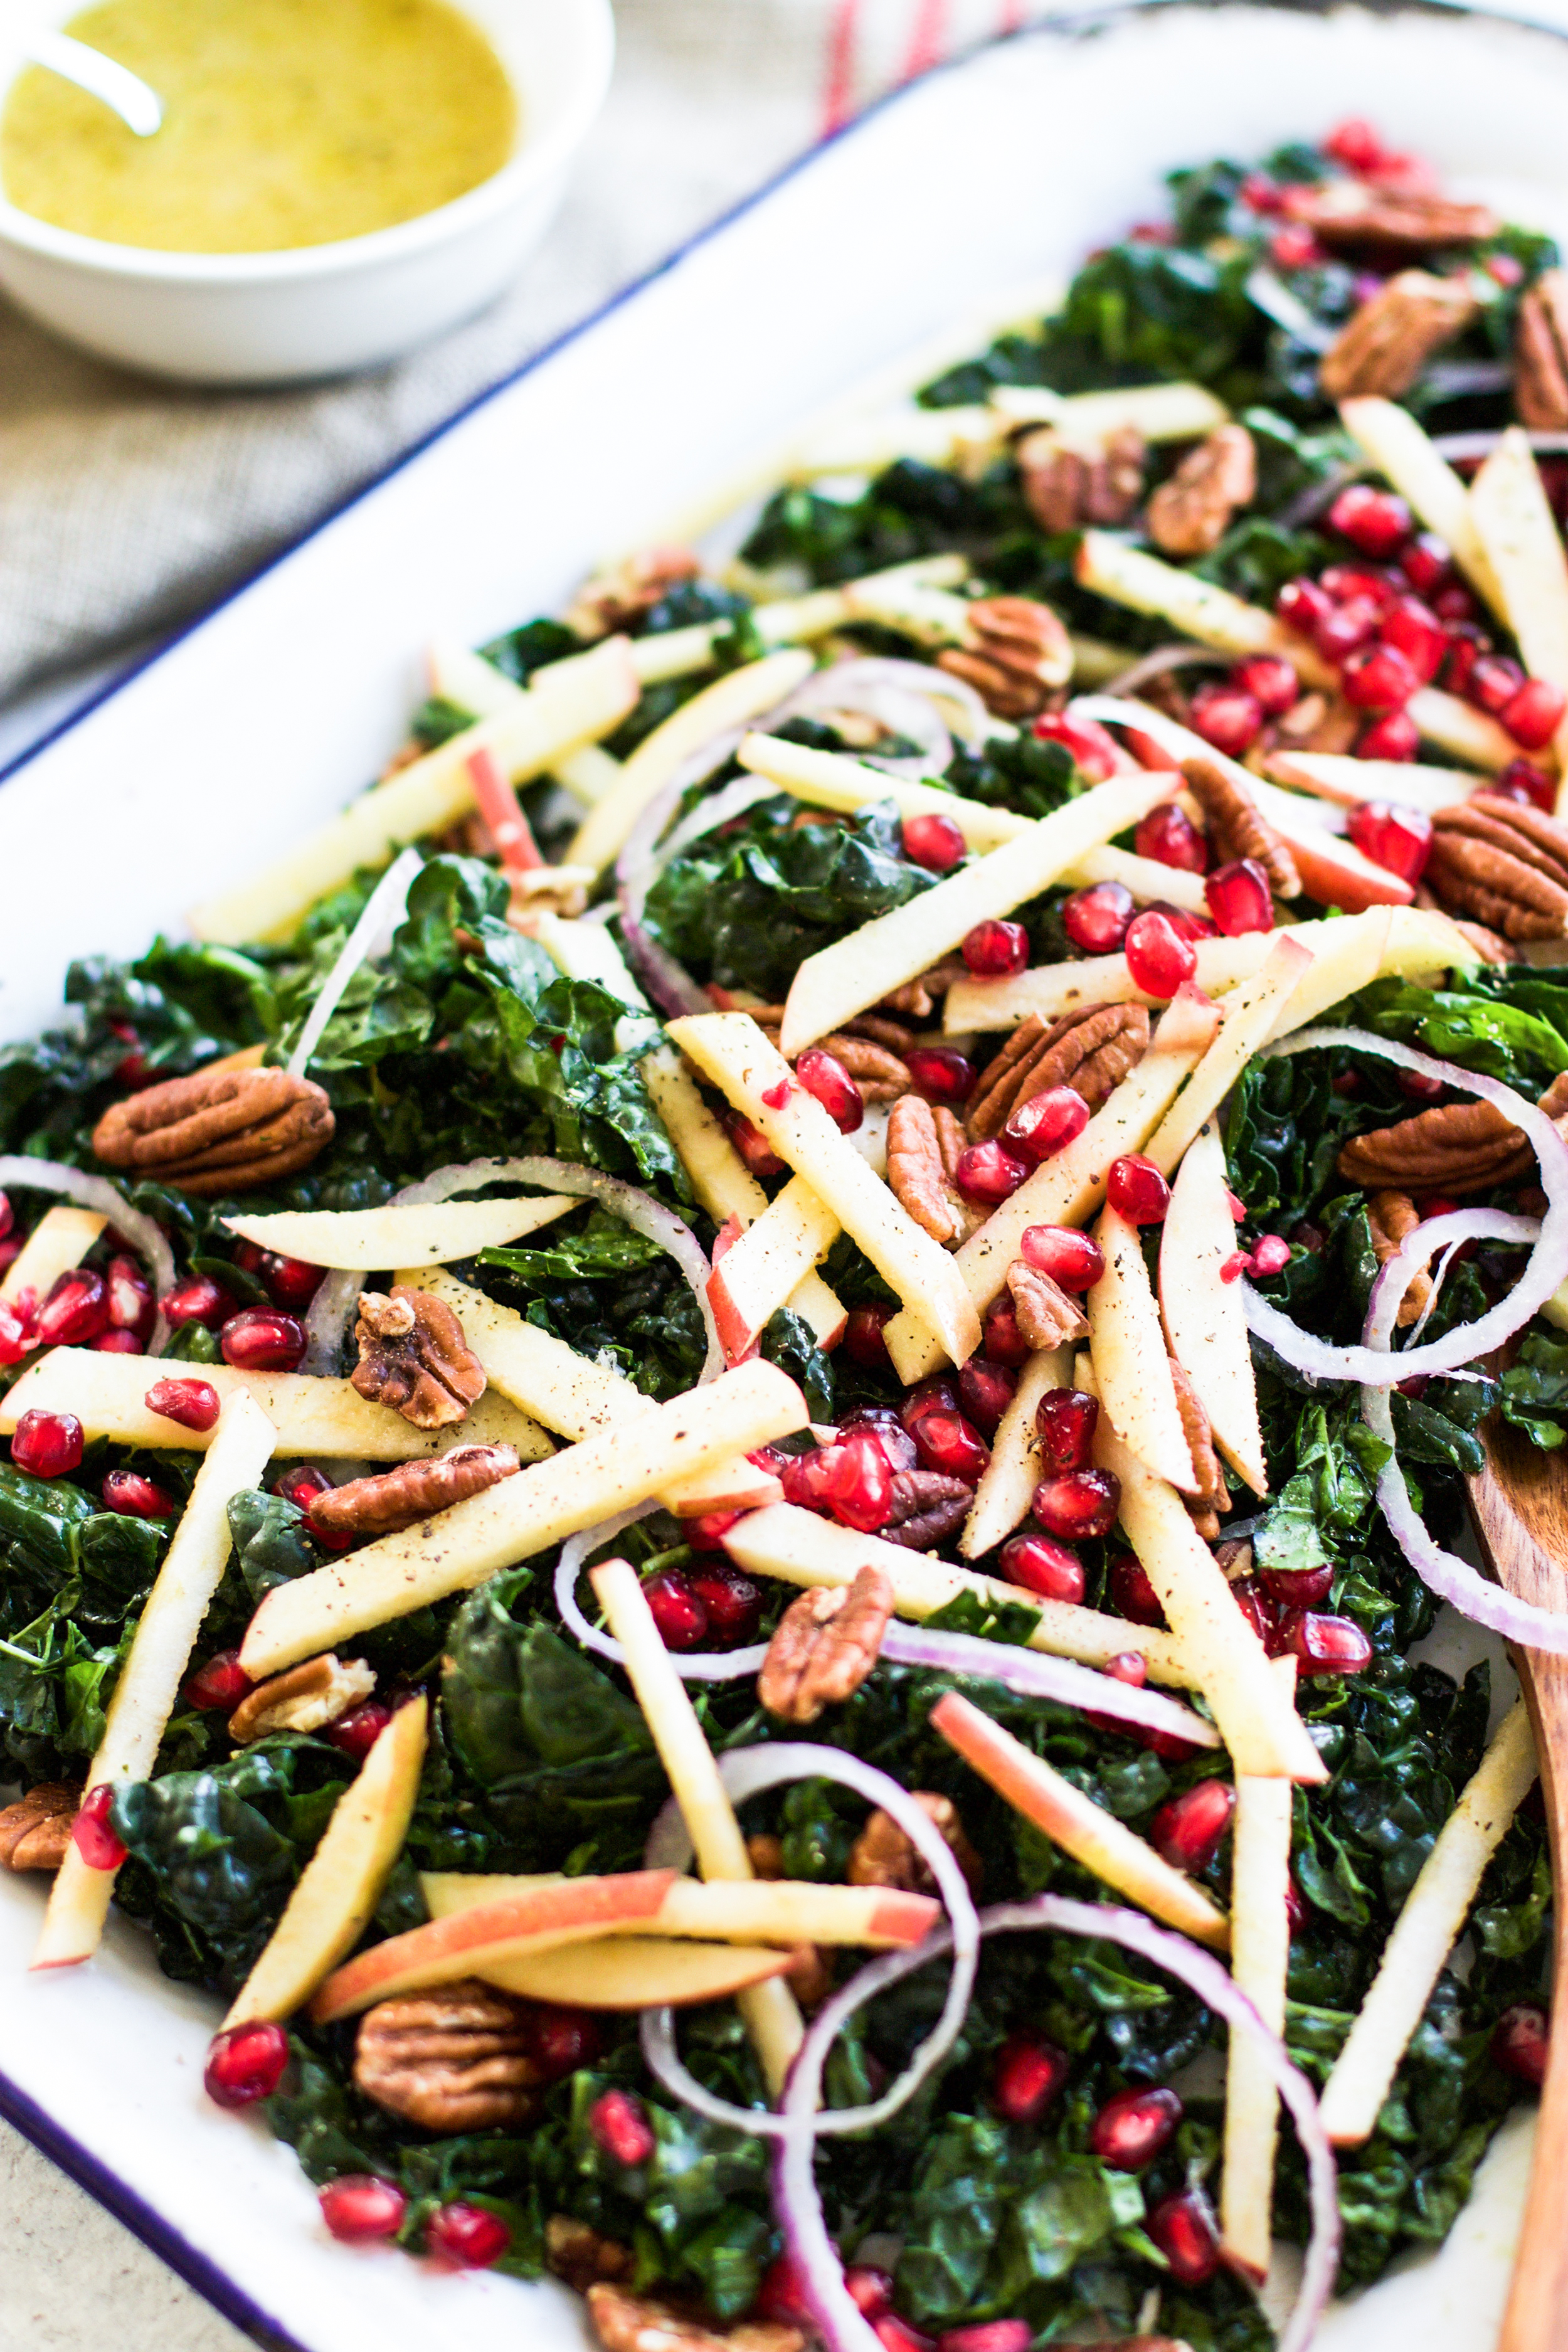 Apple, Kale, and Pomegranate Salad with Apple Cider Vinaigrette: My Diary of Us